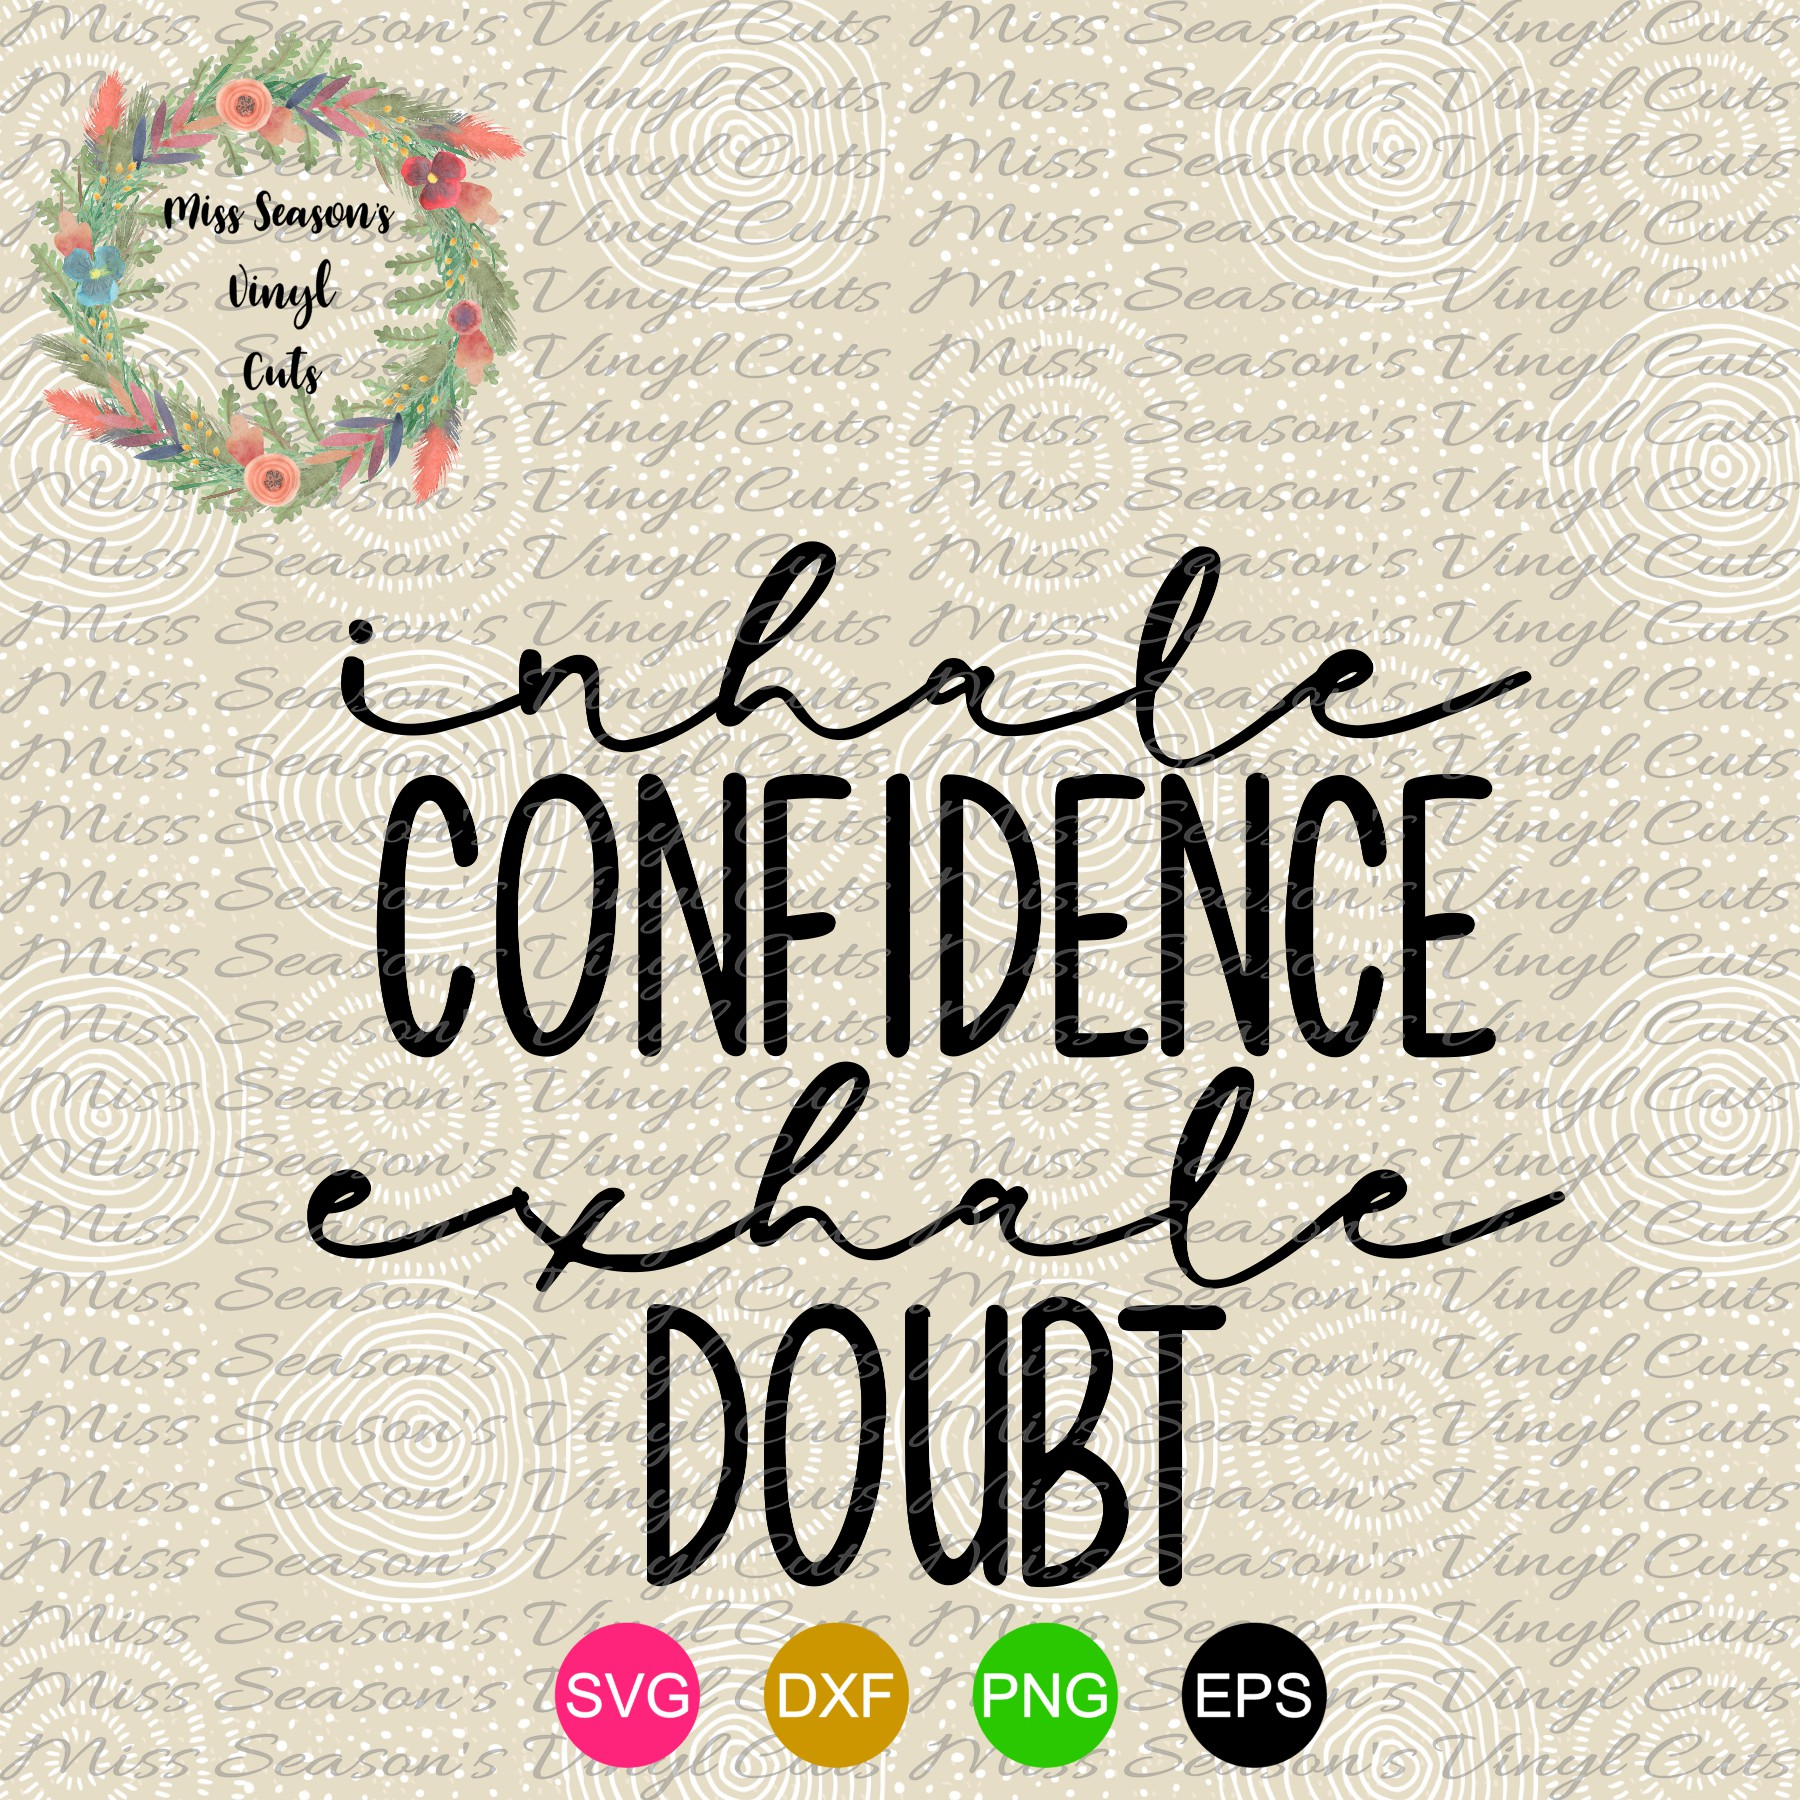 Inhale Confidence Exhale Doubt SVG Png Dxf eps example image 2